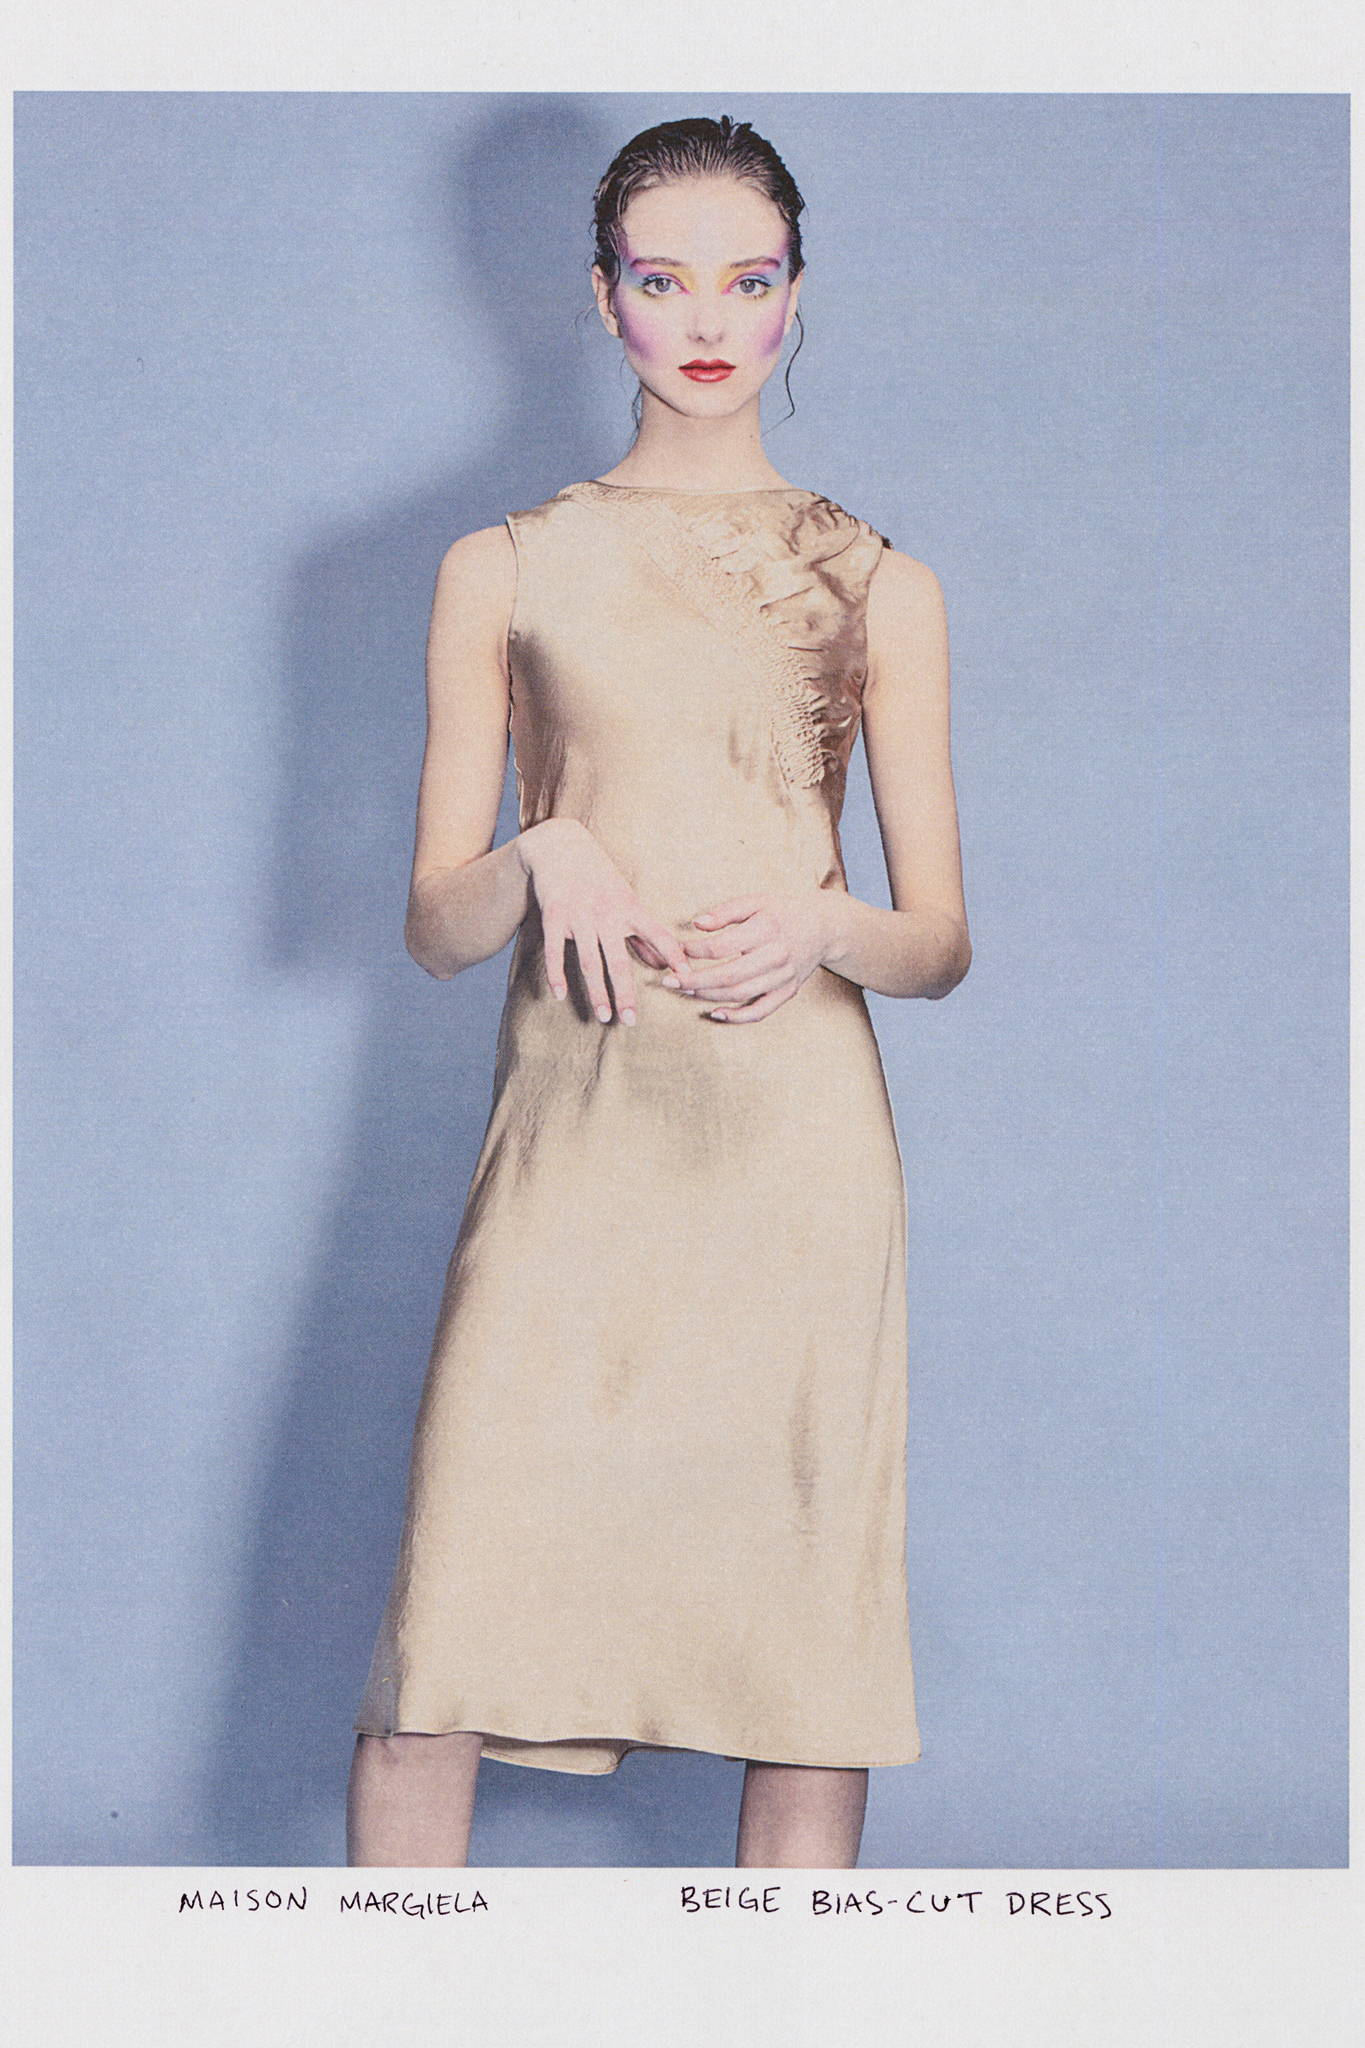 Maison Margiela Beige Bias Cut Dress